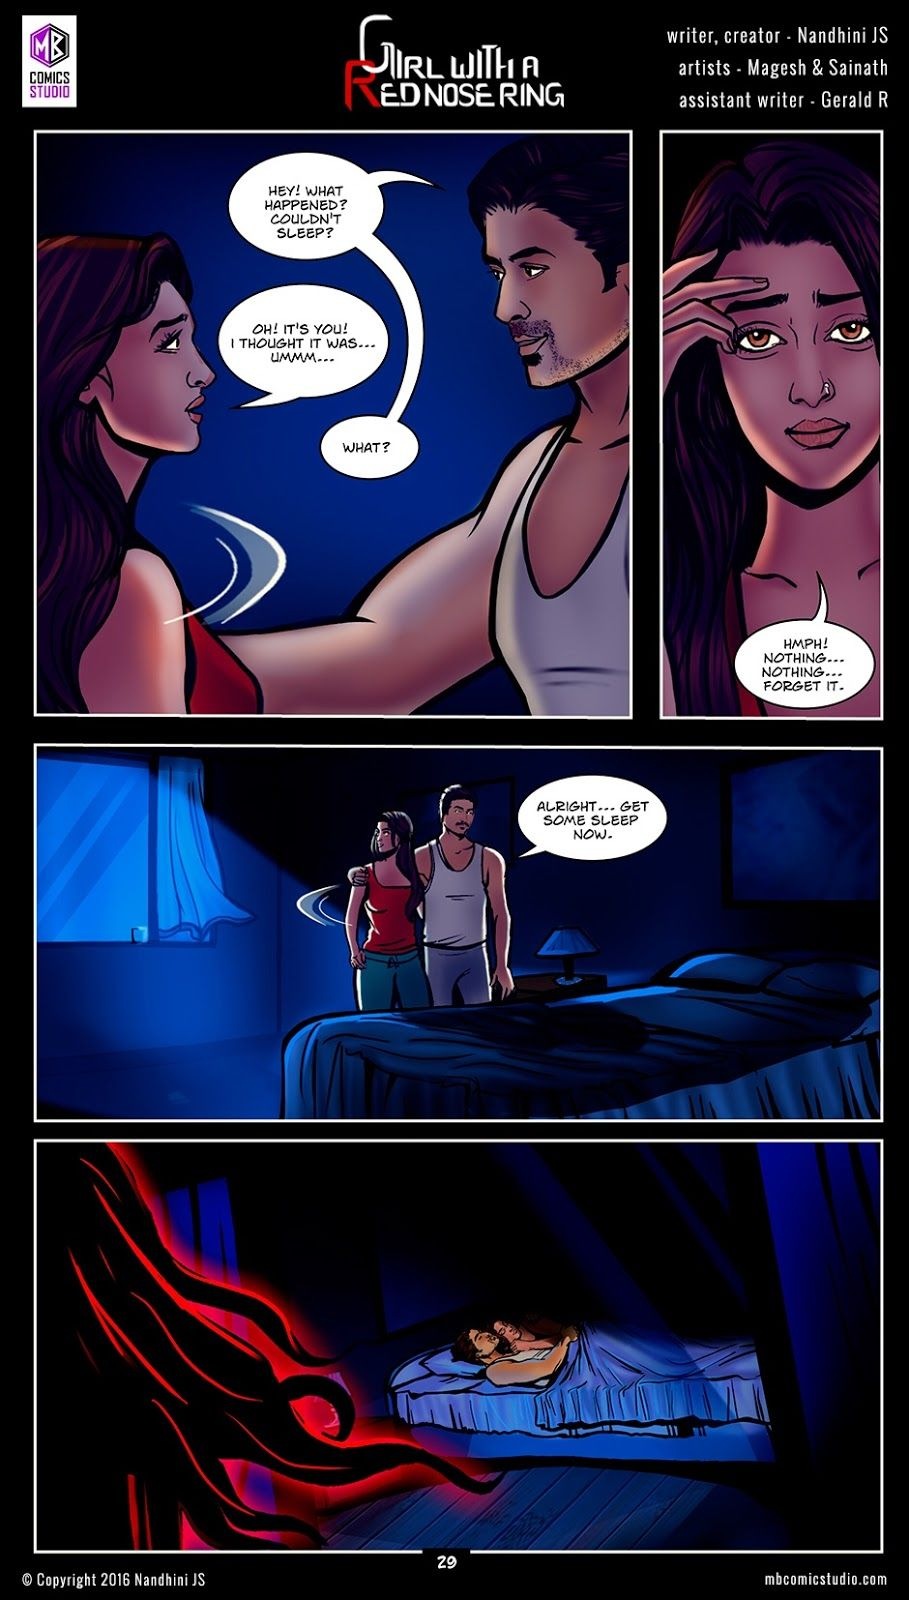 Page 29 - Nandhini's 'Girl with a Red Nose Ring' Comics  (read free